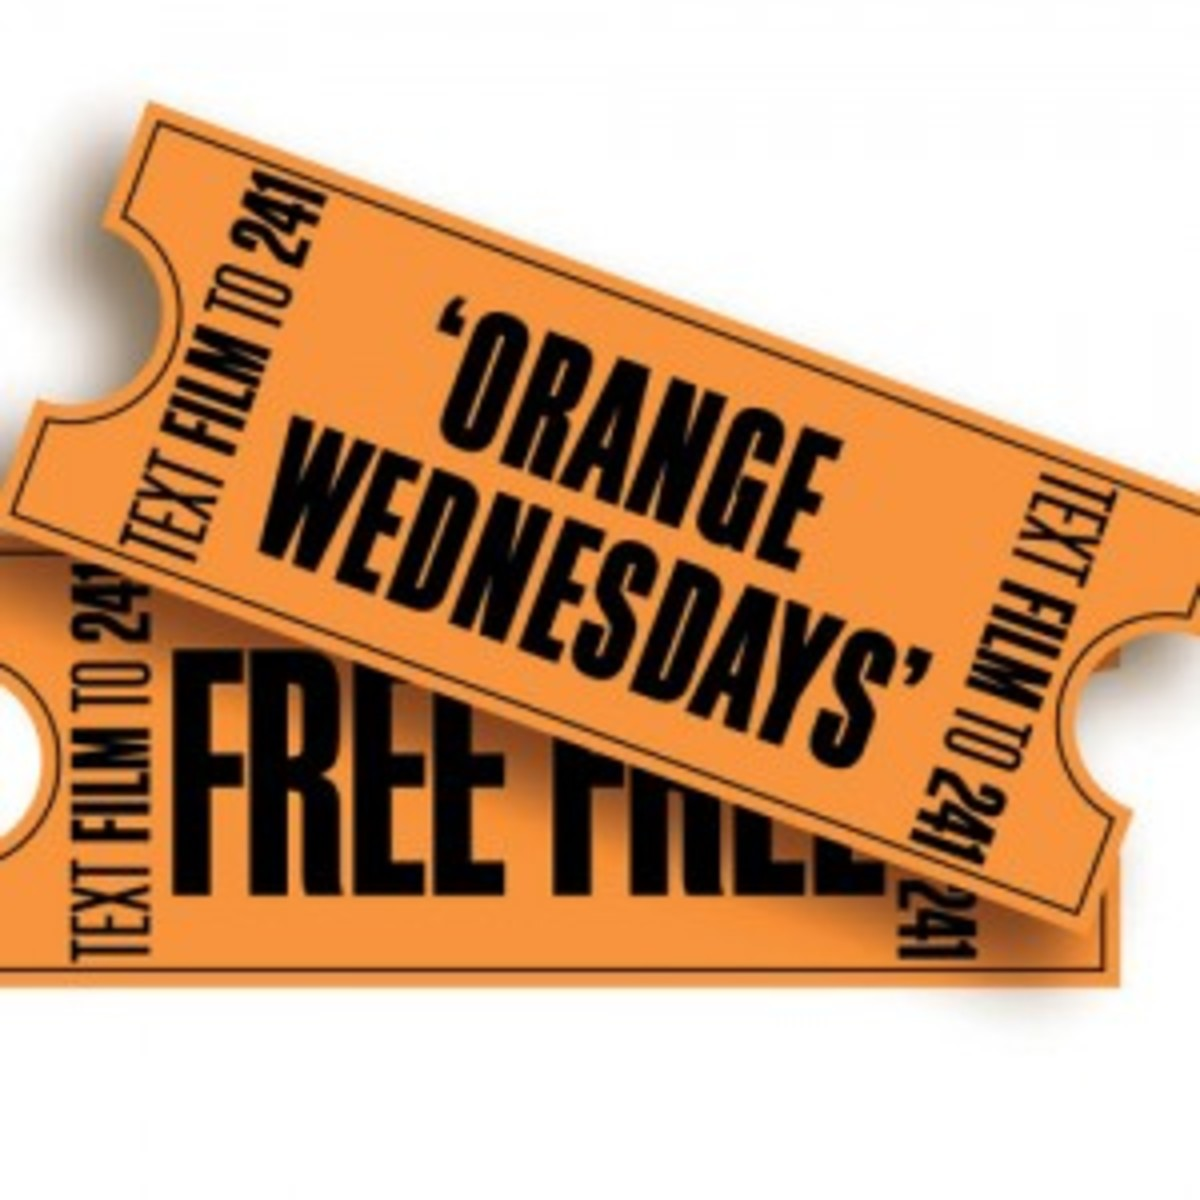 Claim your free cinema tickets With the Orange Wednesday deal